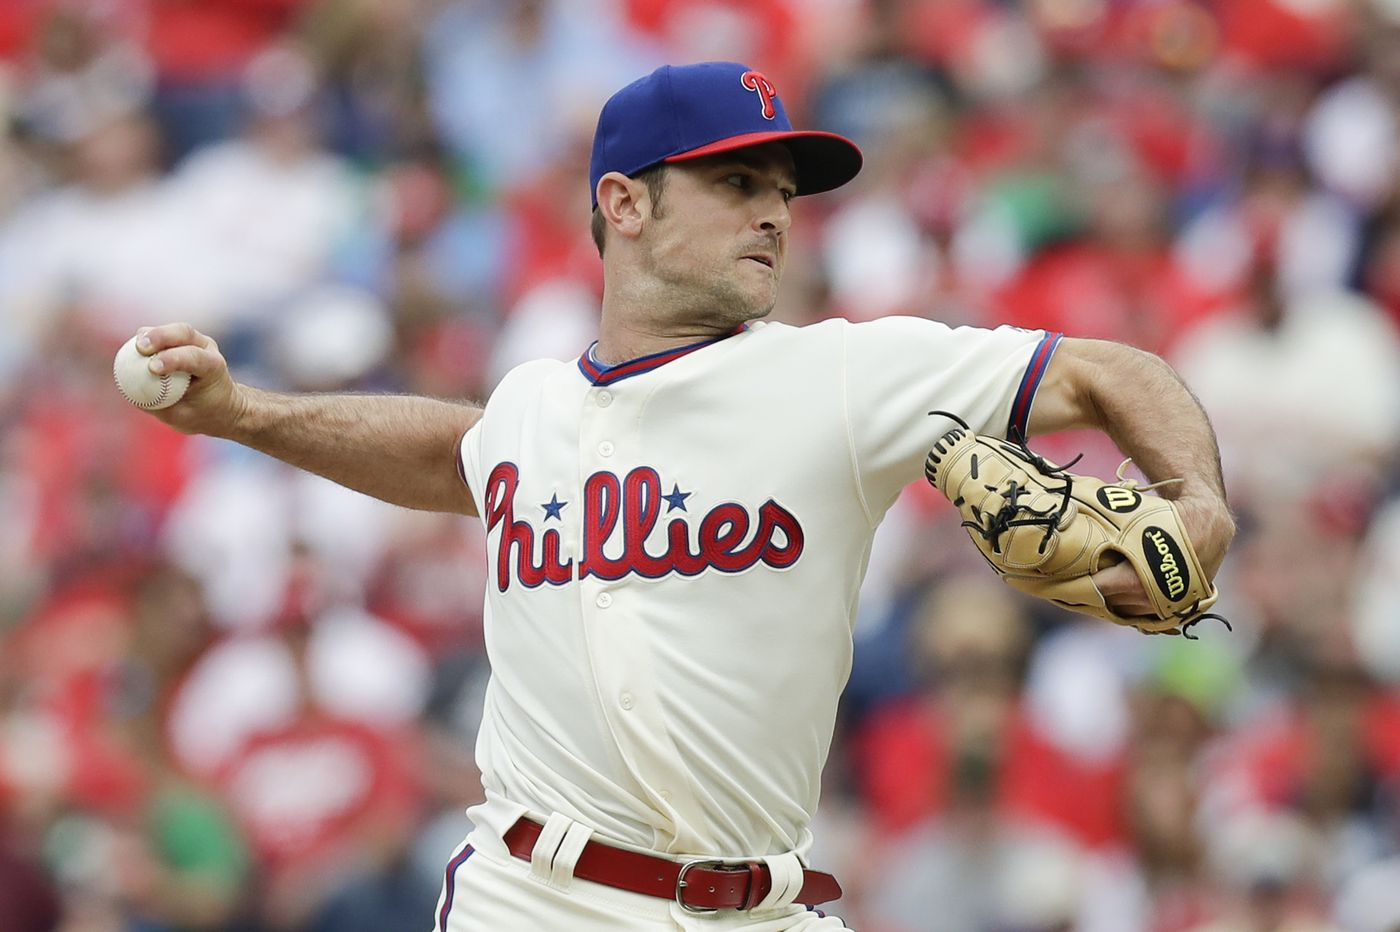 Phillies reliever David Robertson will miss at least another month